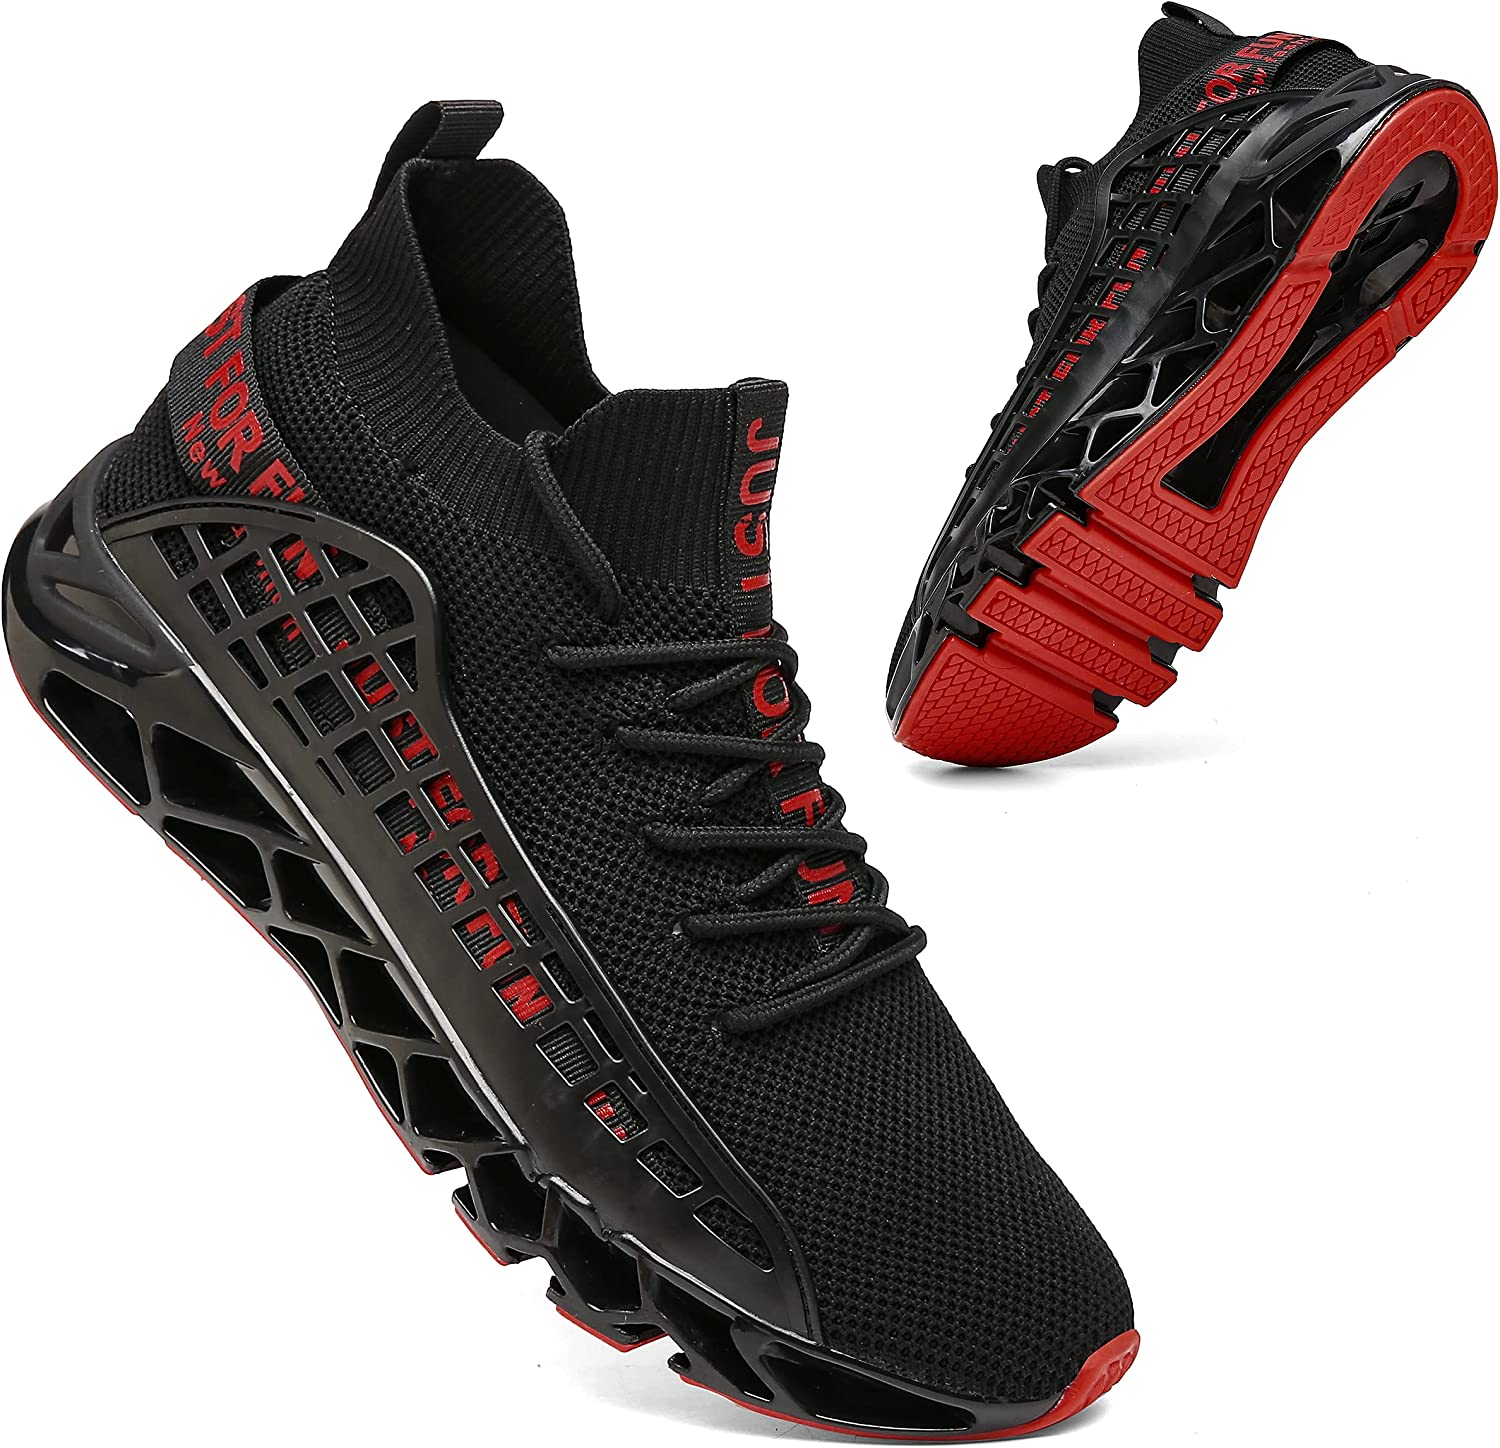 KUXIE Mens Running Shoes Max 80% OFF Brand new Athletic Casual Fashion Walking S